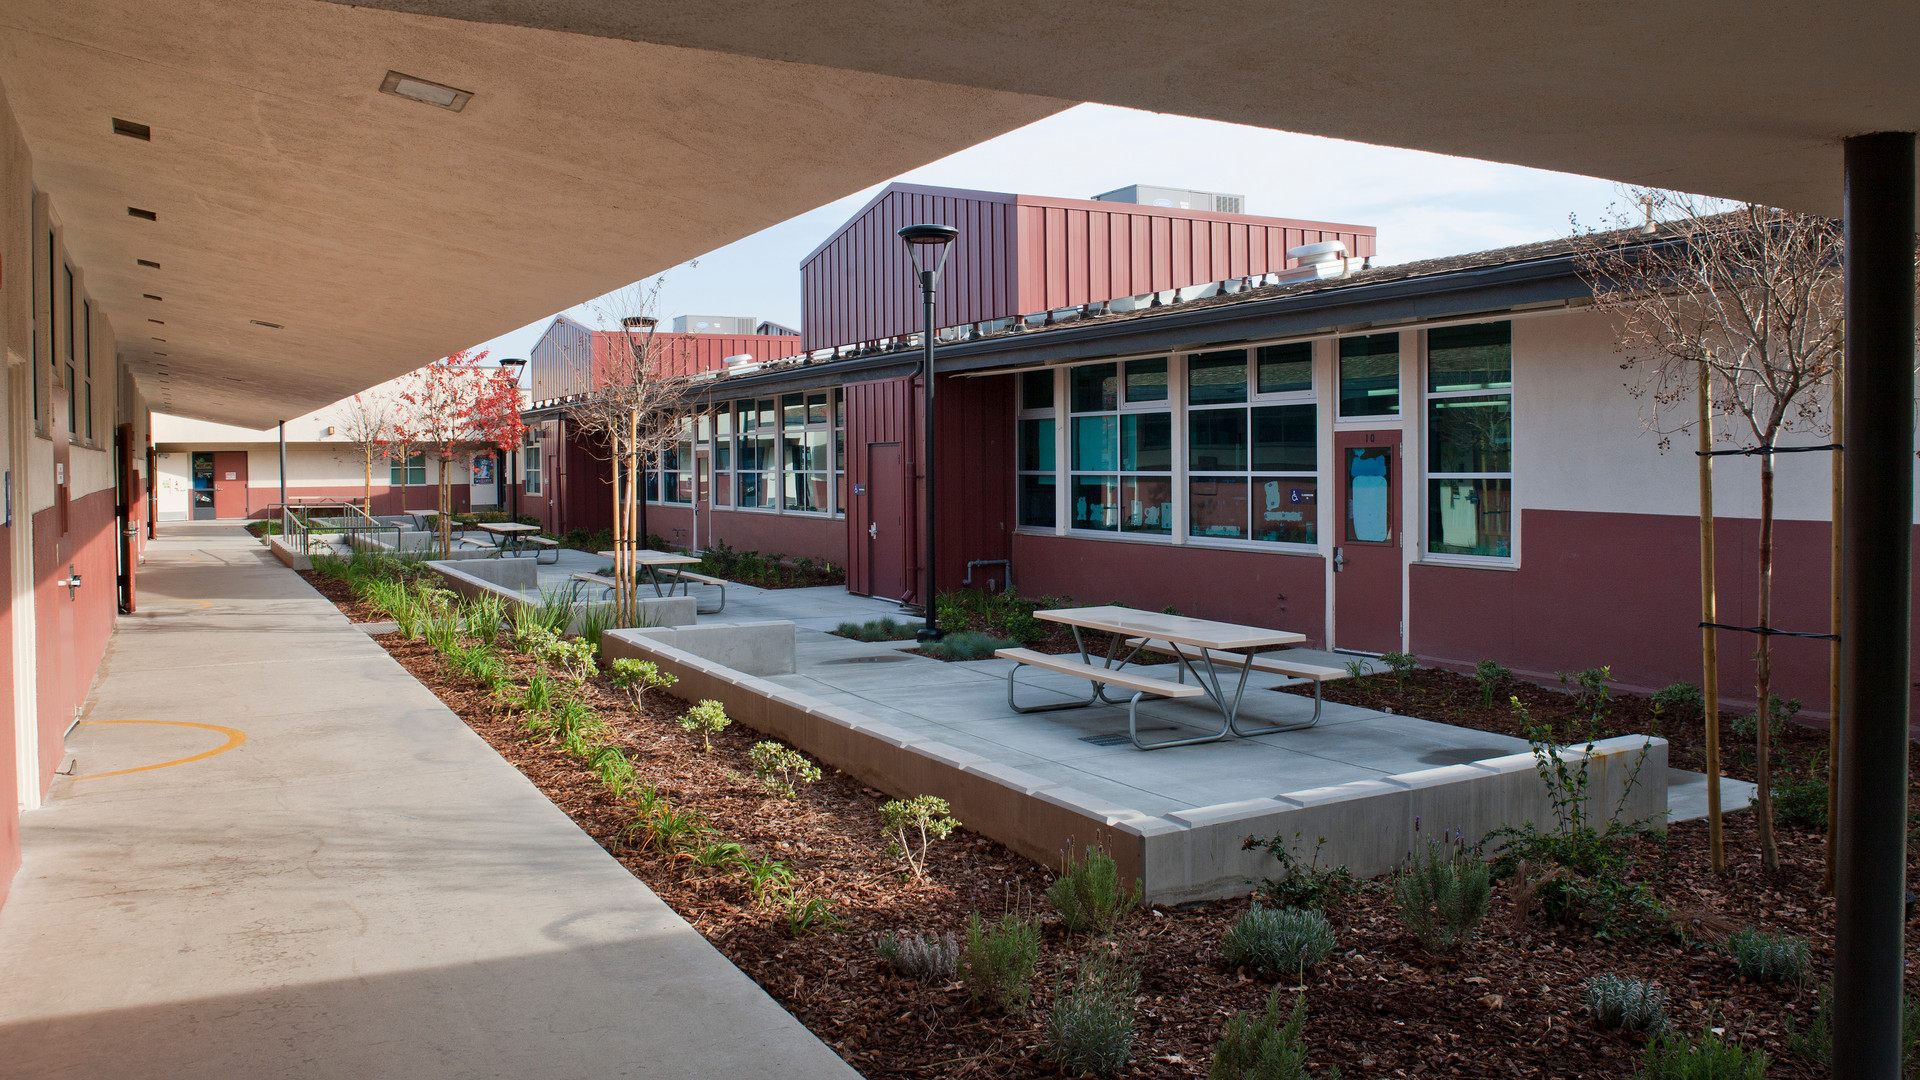 Modernization, Valle Vista Elementary School